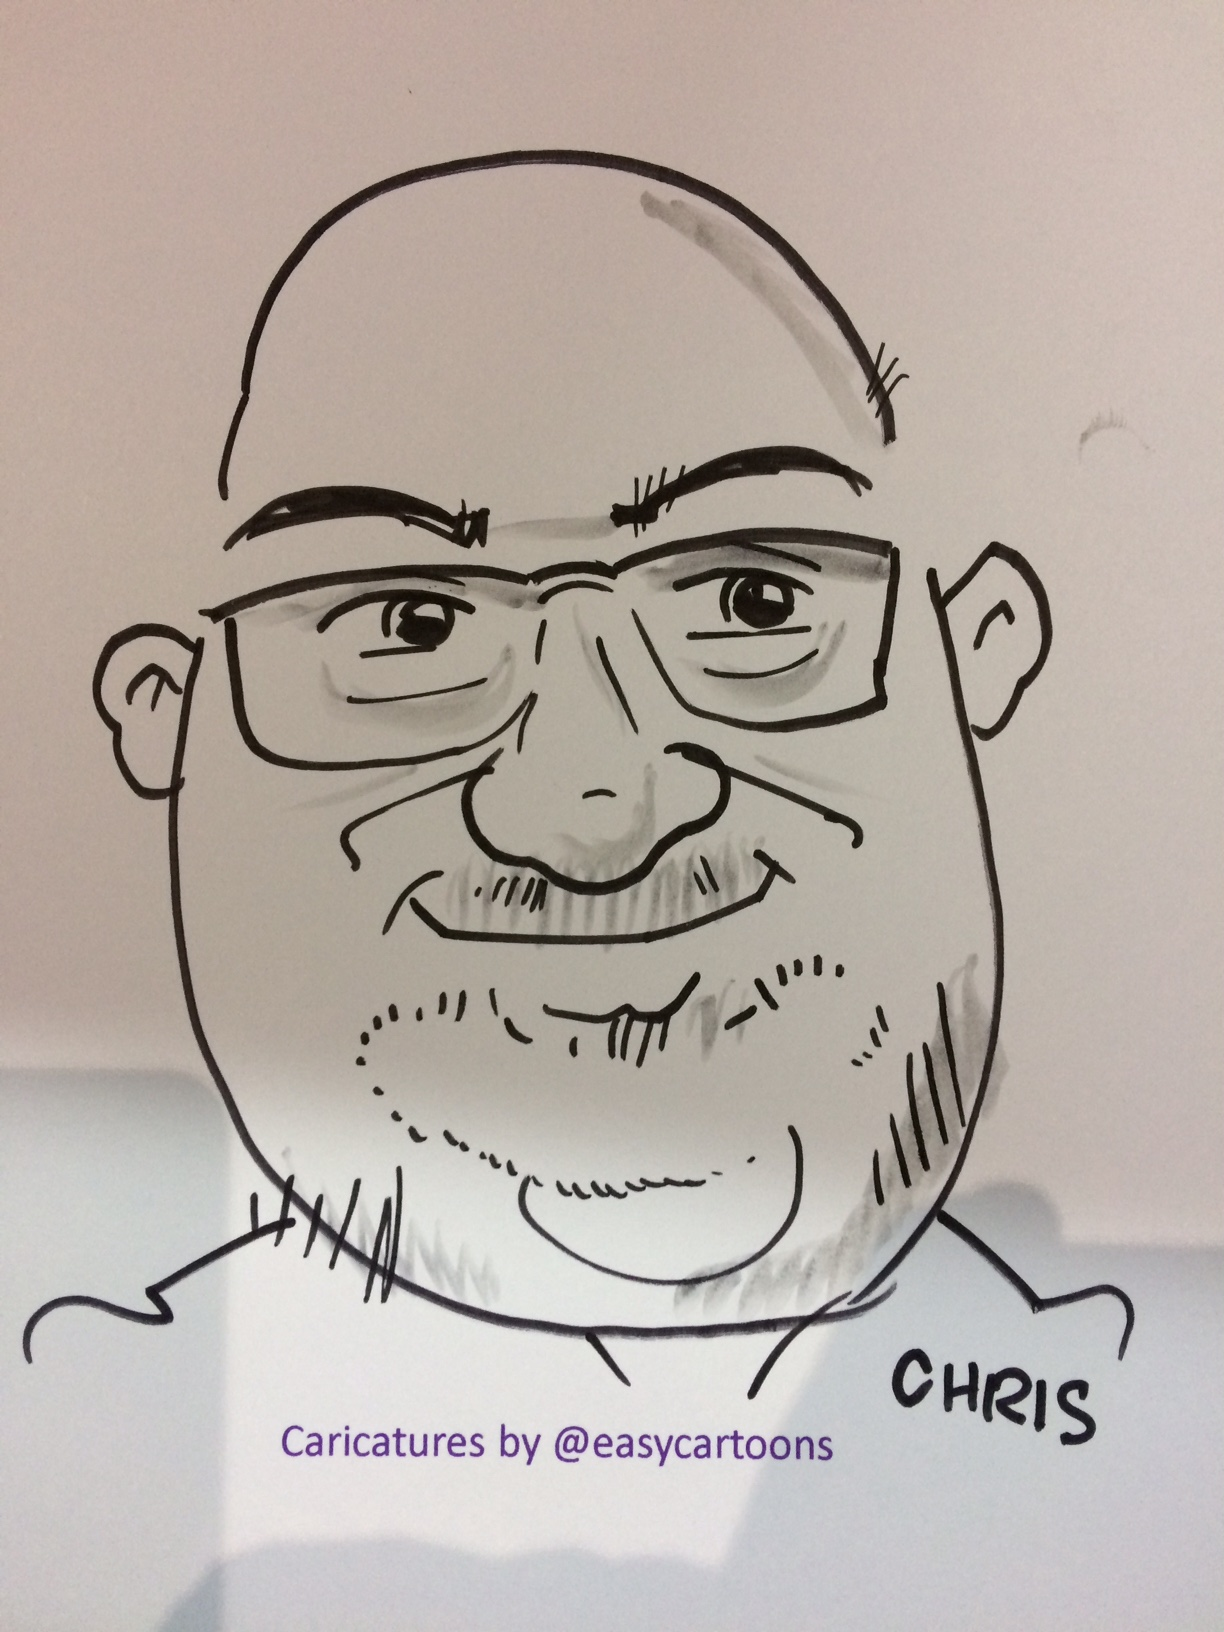 Caricature drawn at the event of Abfad's Chris